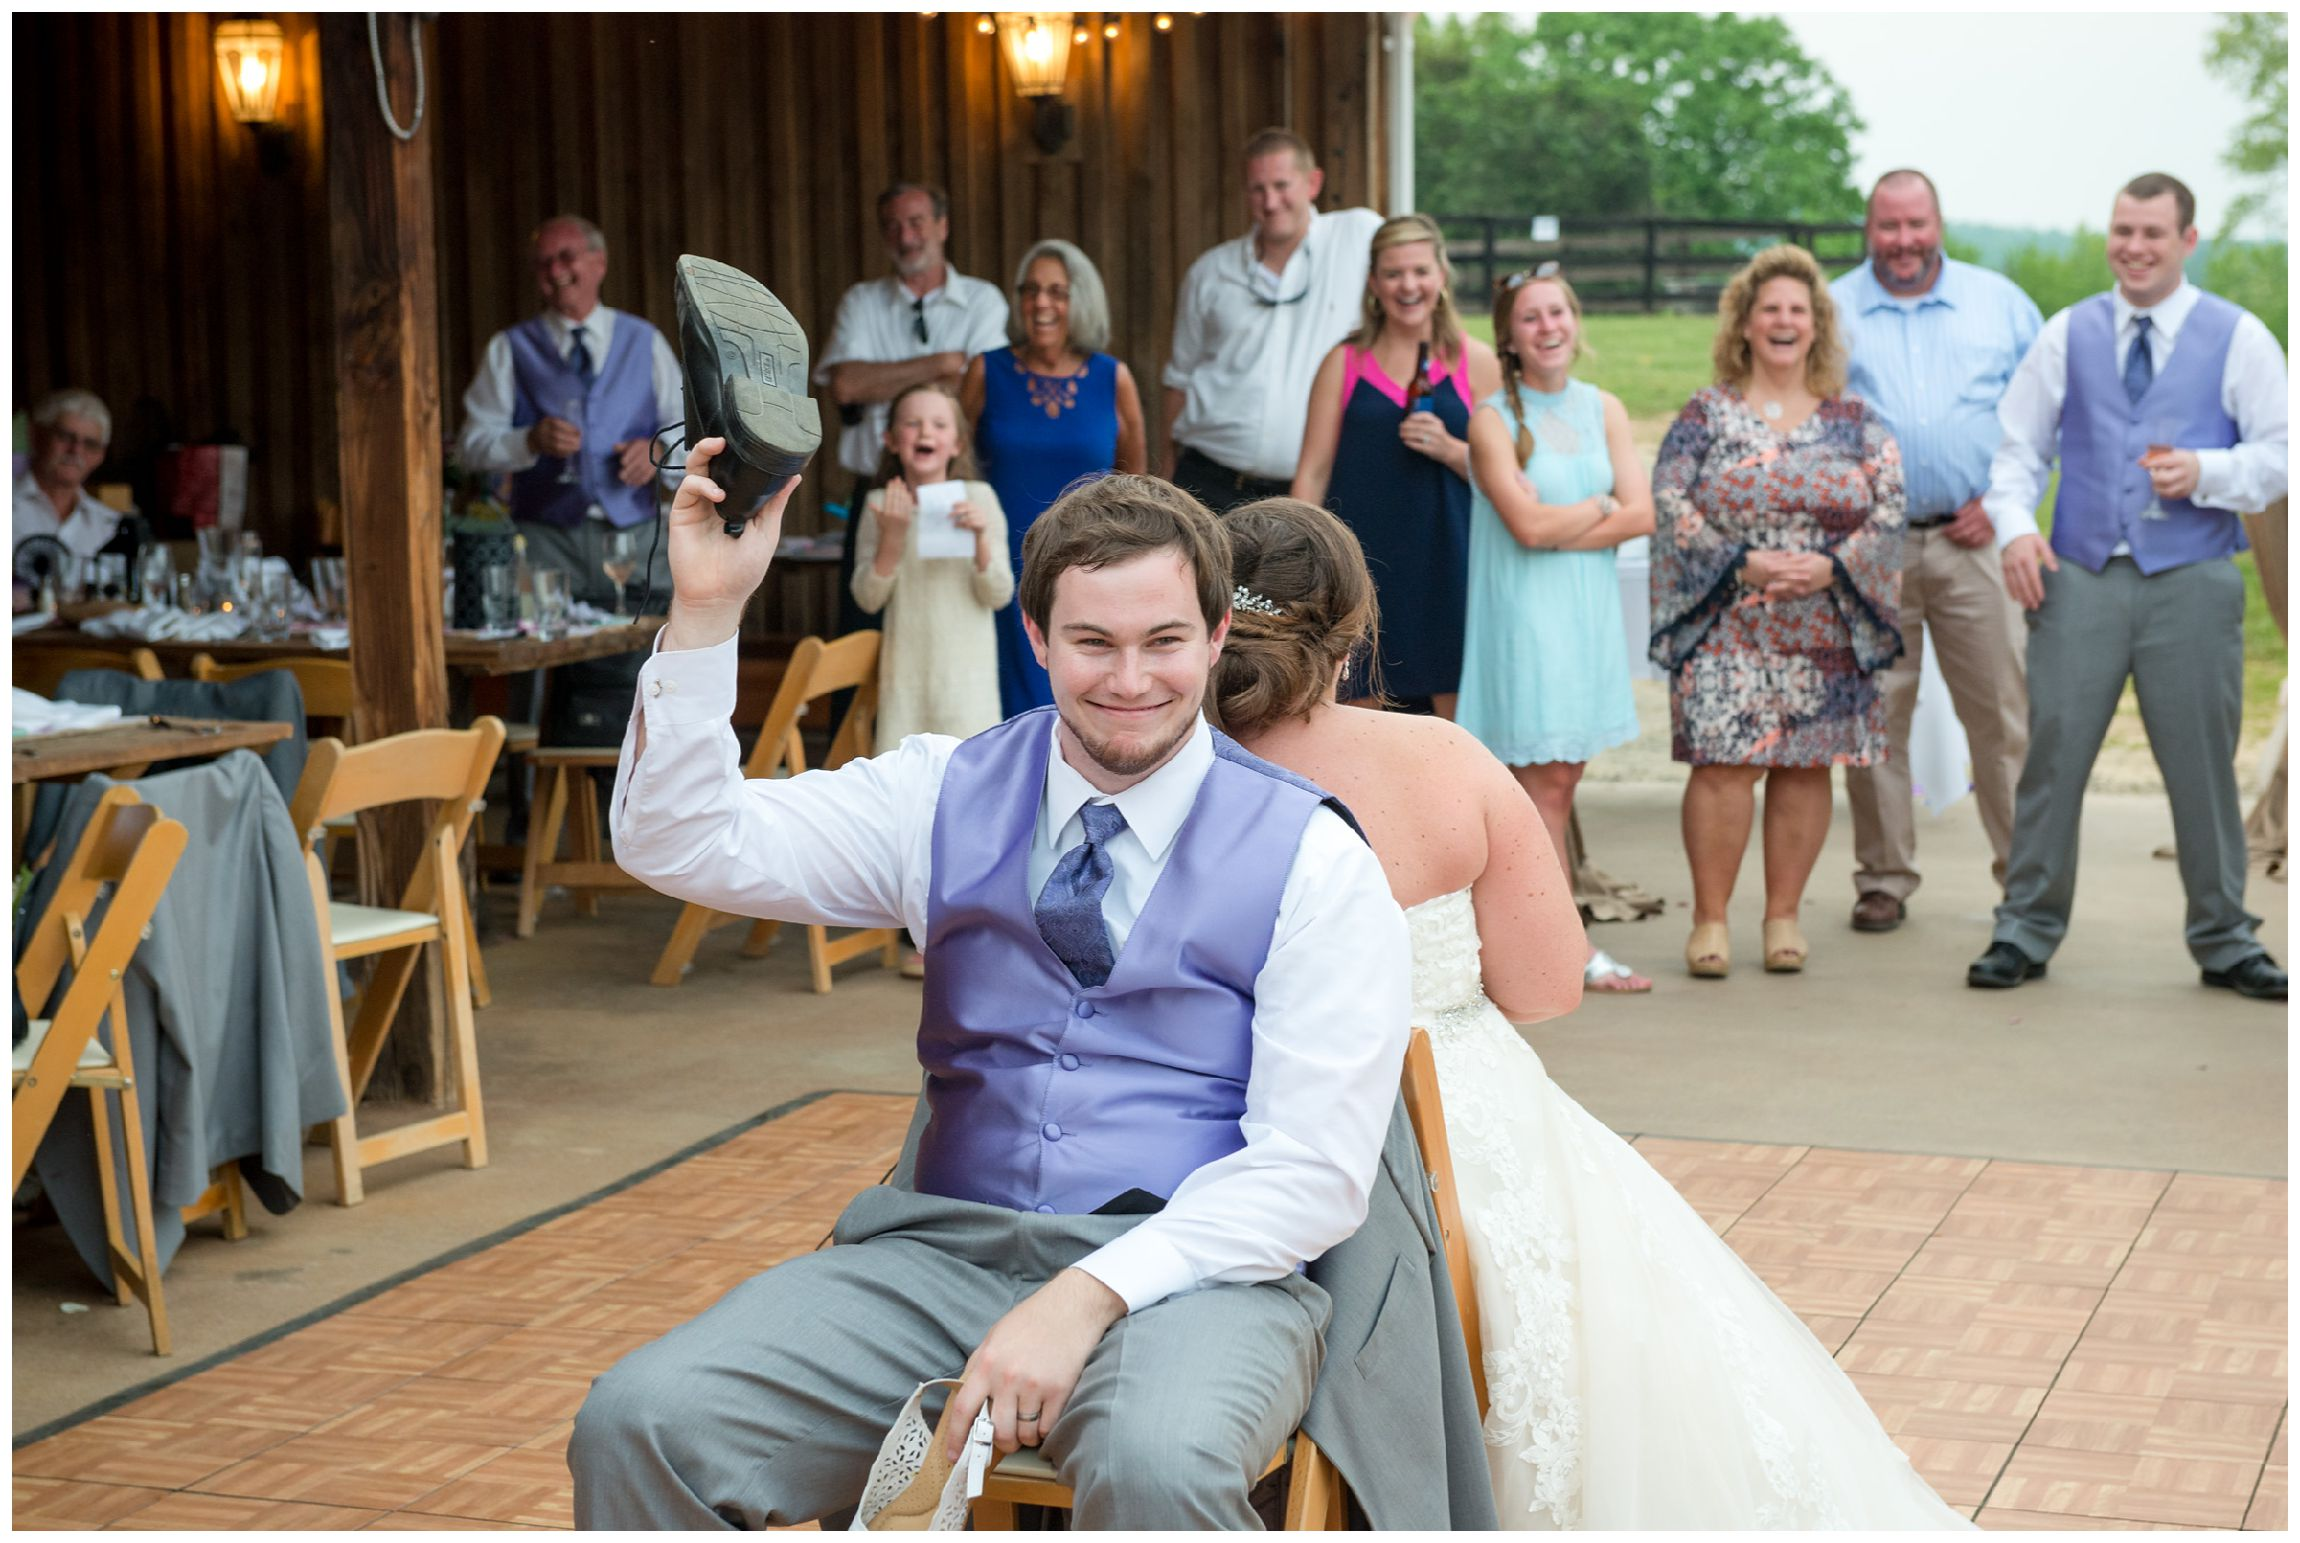 bride and groom play shoe game at barn wedding reception at Wolftrap Farm in Virginia